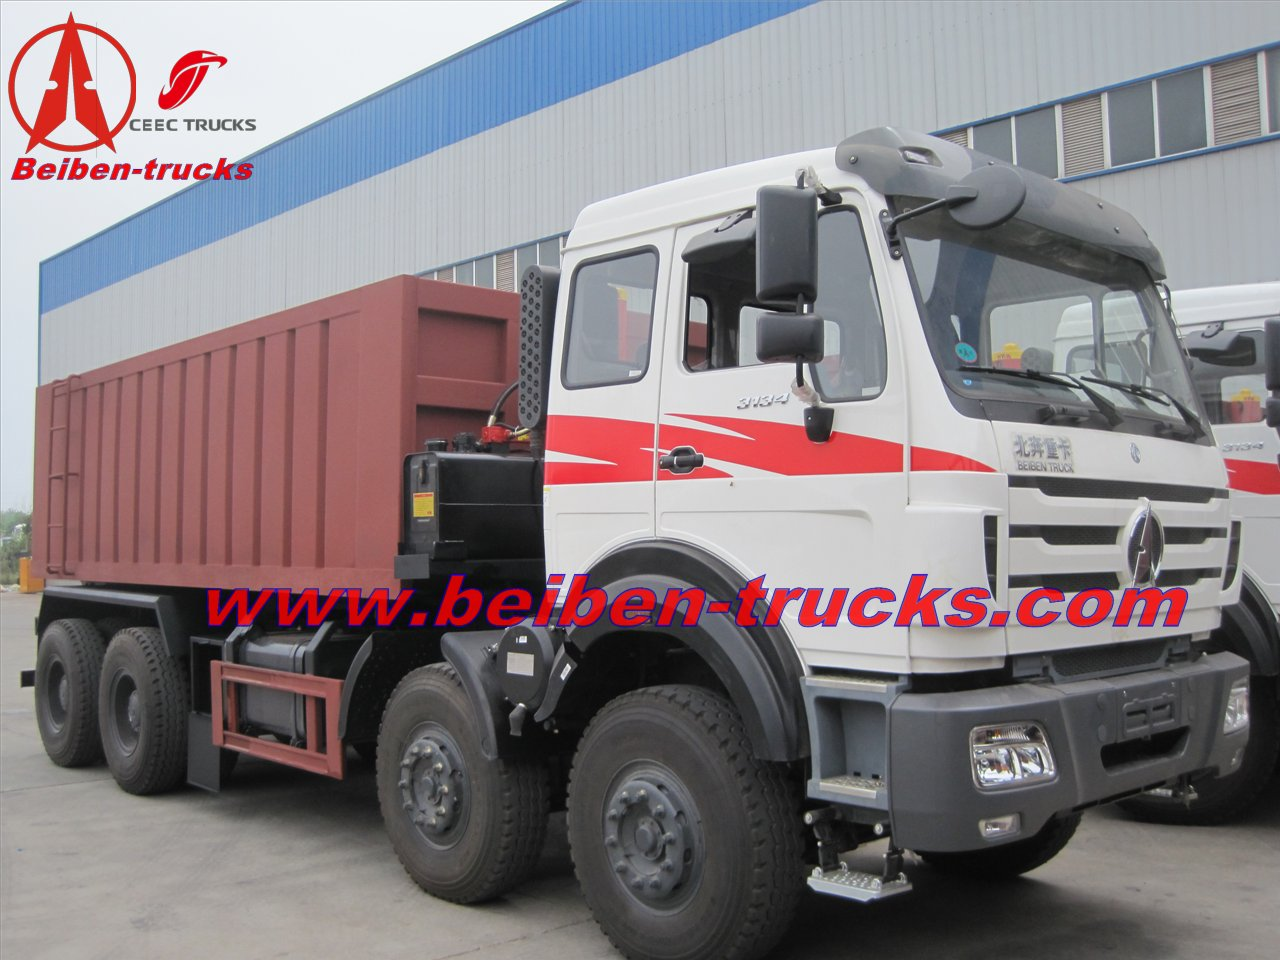 china beiben 50 T dump truck for mogolia country using